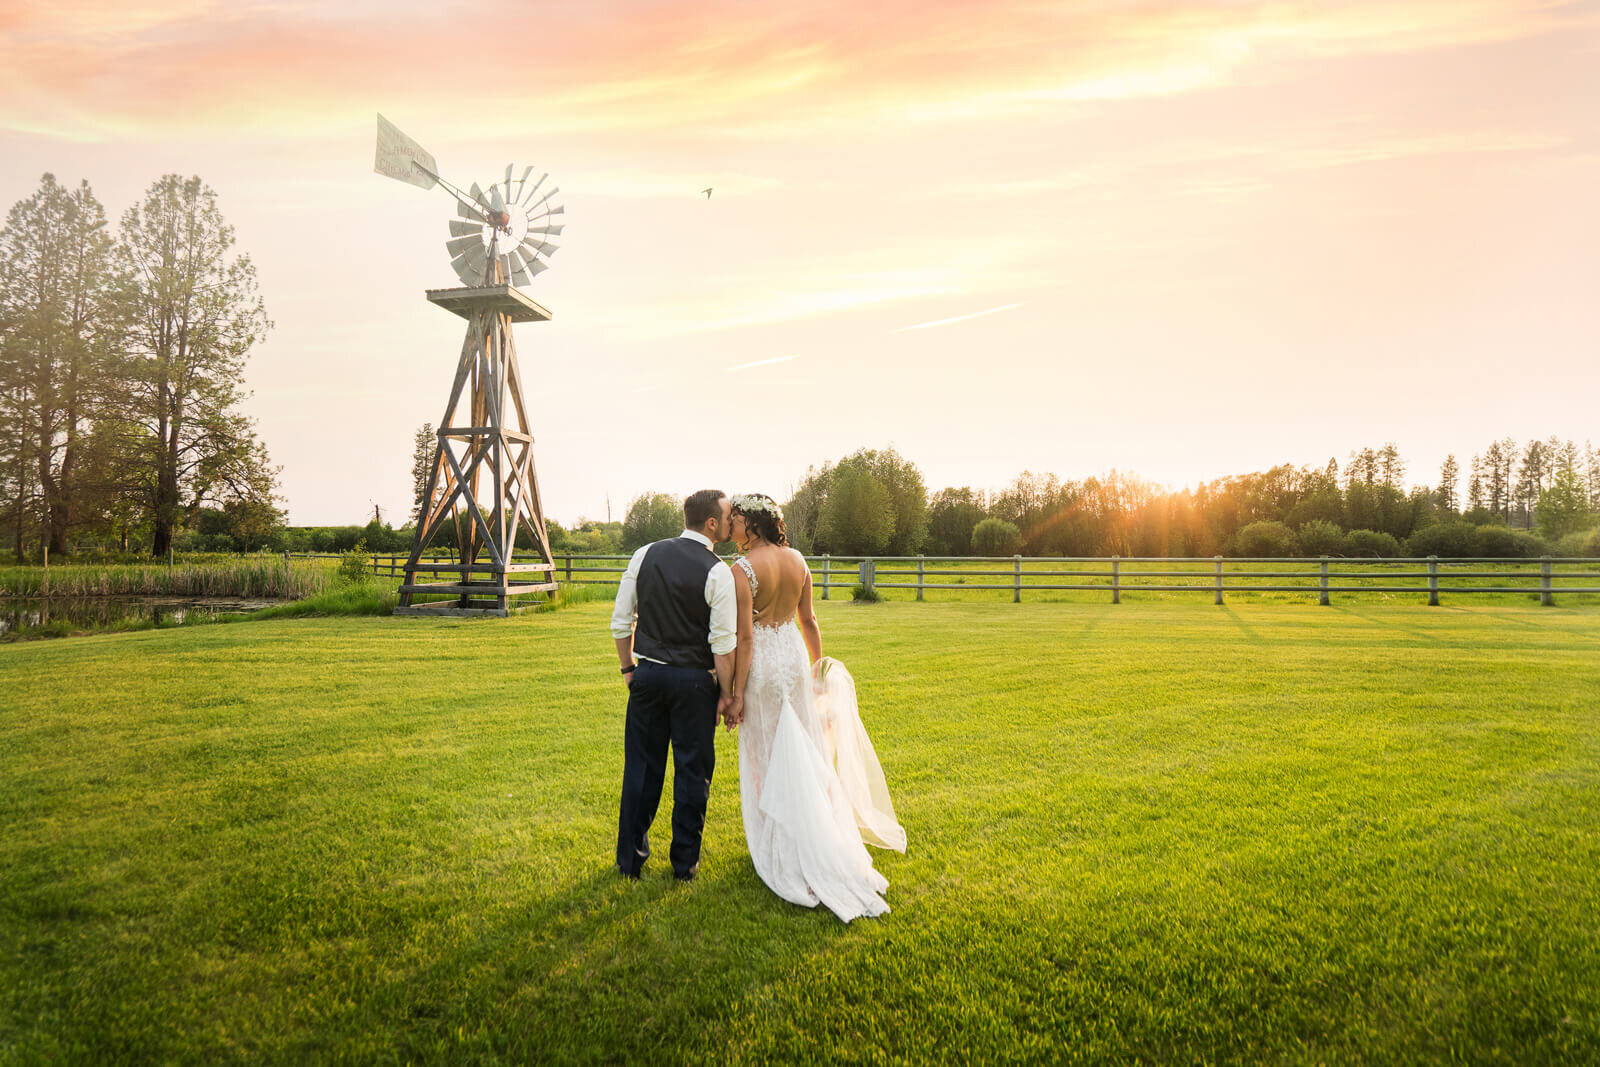 Montana-Wedding-Venue274